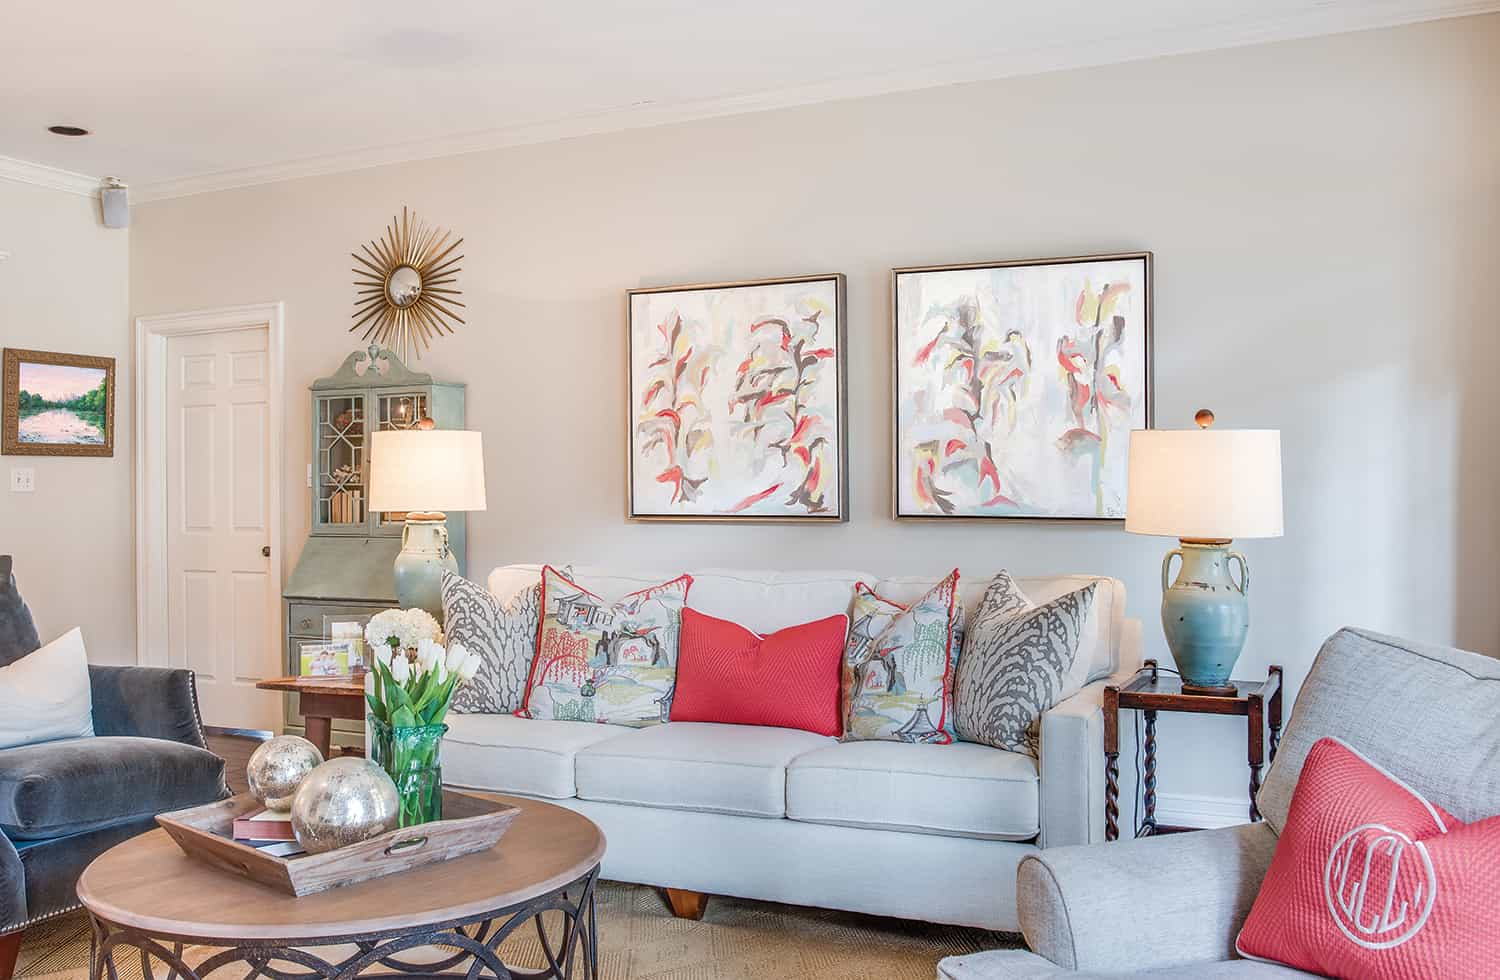 Bring the entire look together by having pink art pieces that match your decor.